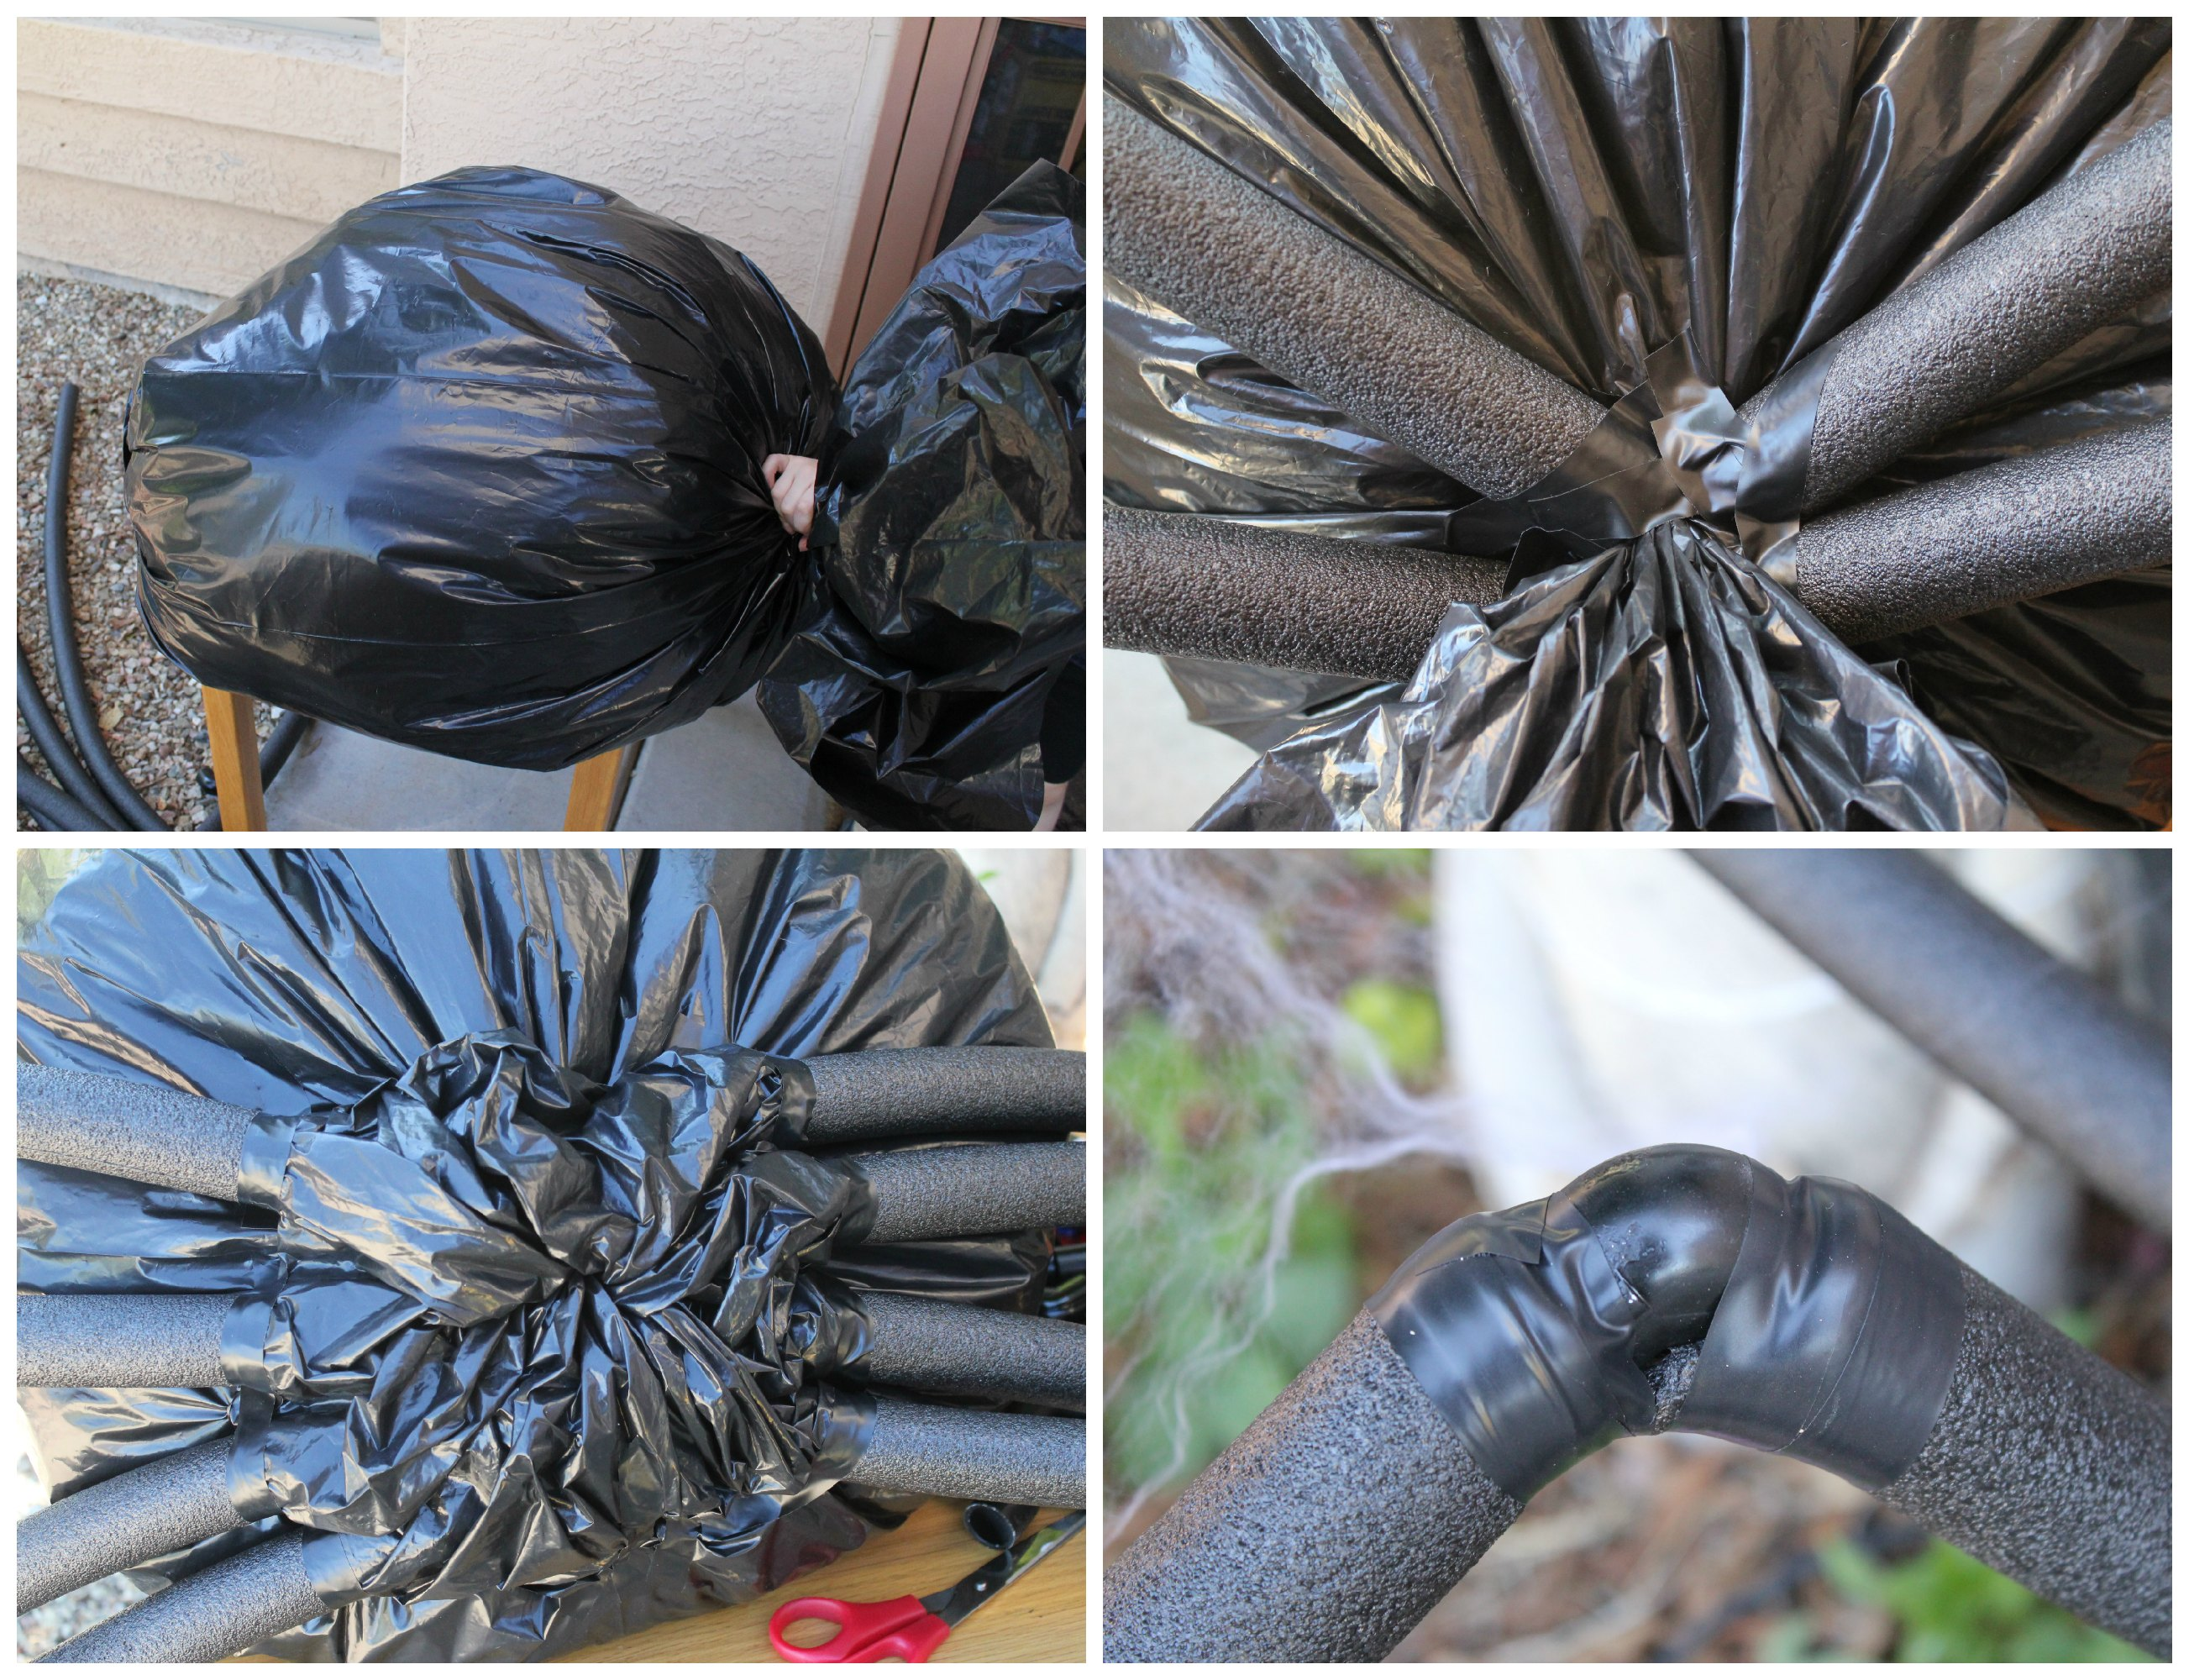 Scary outdoor halloween decorations to make - Making A Giant Yard Spider For Halloween